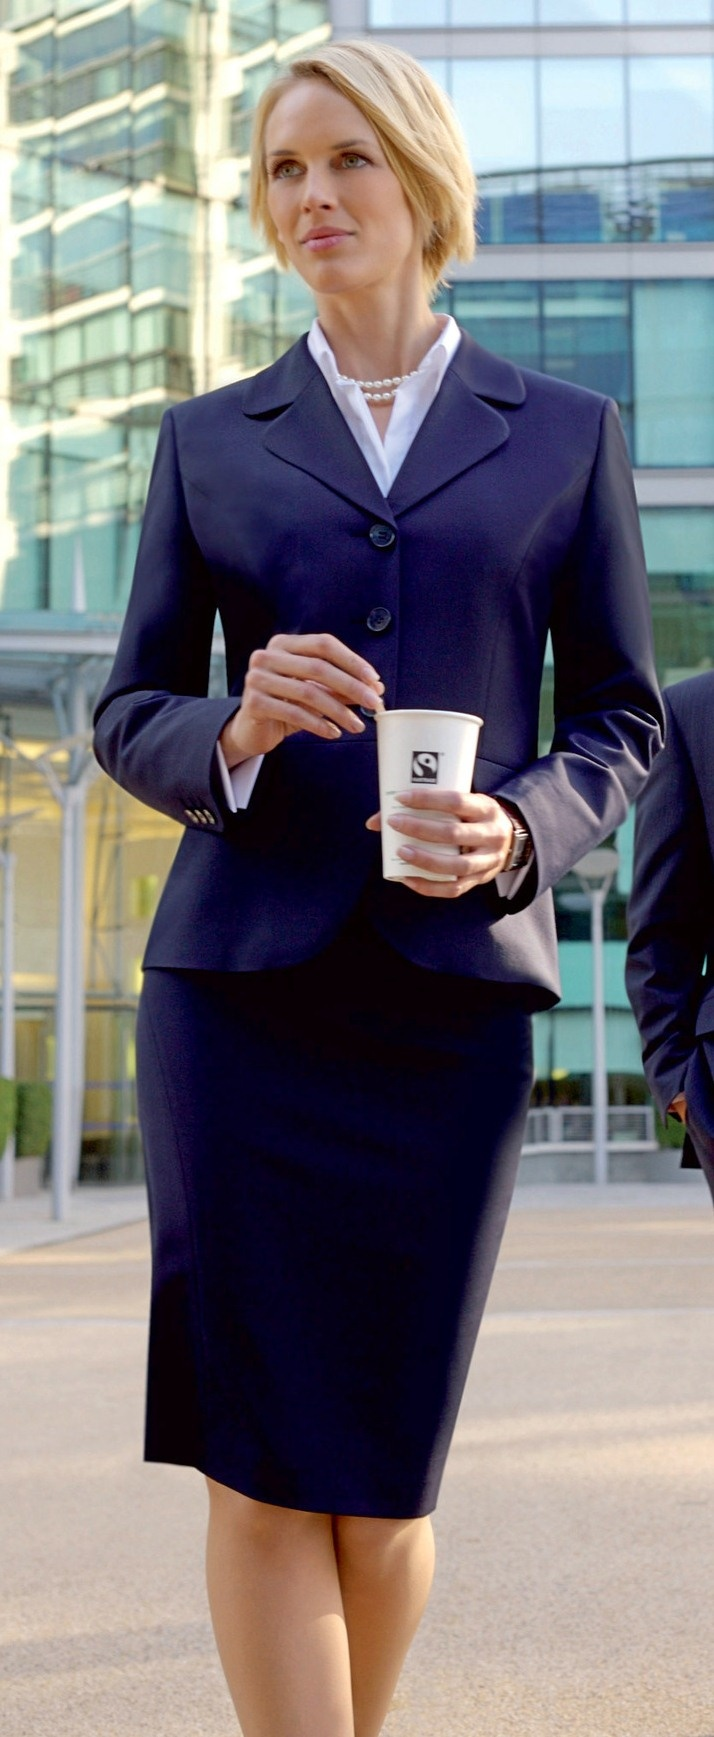 Very Nice Pencil Skirt Suit In Navy In 2019 Suit Fashion